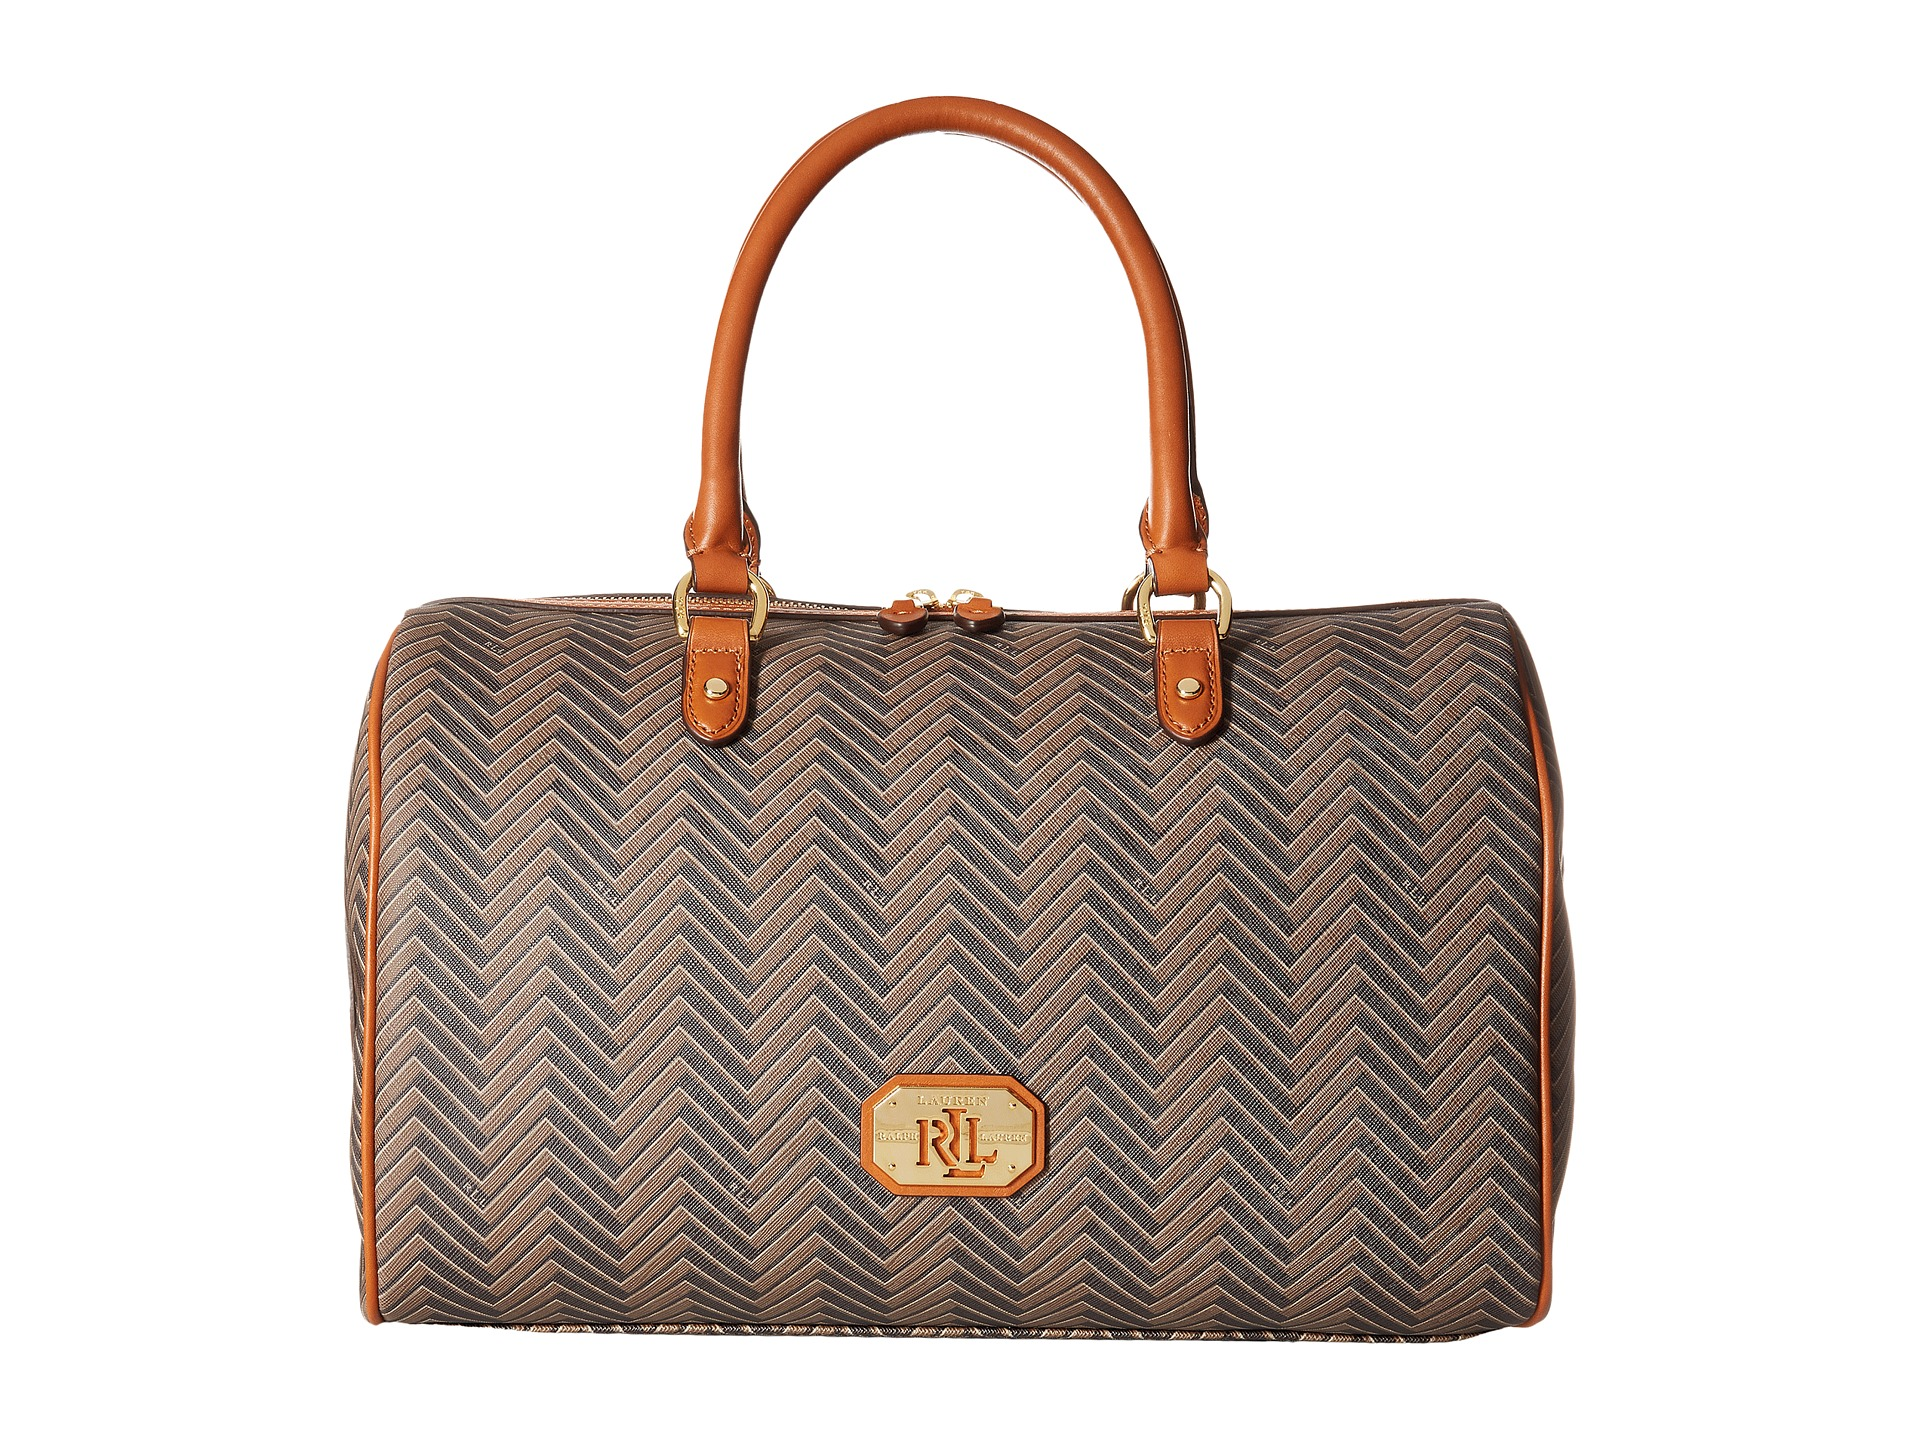 Ralph Lauren truly is a lifestyle label. Lauren by Ralph Lauren is one the brand's diffusion lines and it marries the traditional heritage feel of Ralph Lauren with an elegant, feminine and polished aesthetic. Shop the range of women's Lauren by Ralph Lauren totes for chic day-to-night bags that will stand the test of time and season.